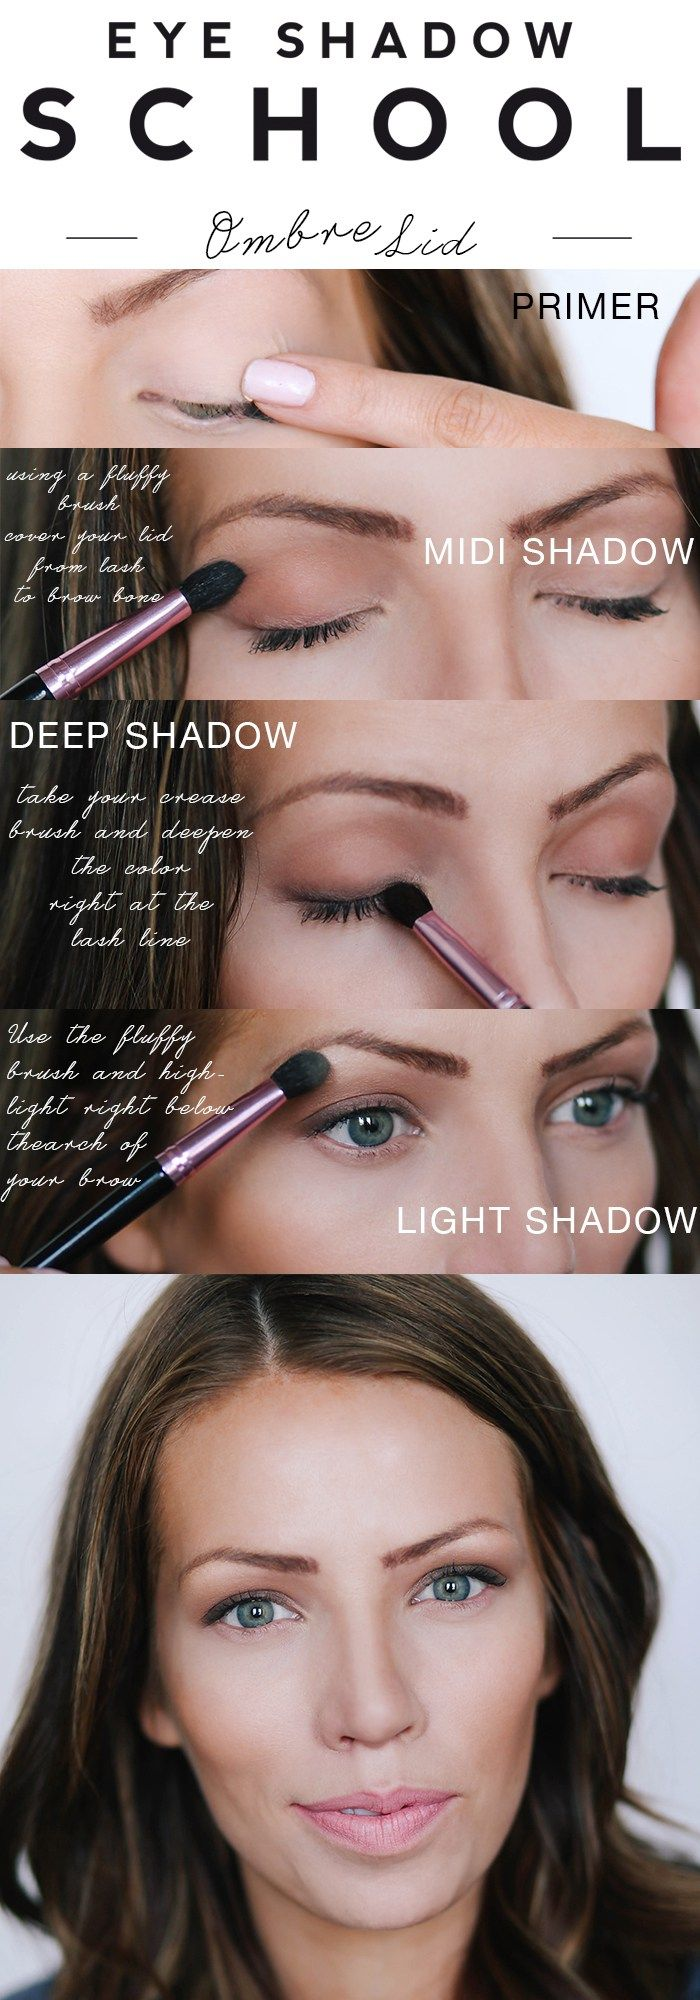 Every Eyeshadow technique simplified! So awesome!